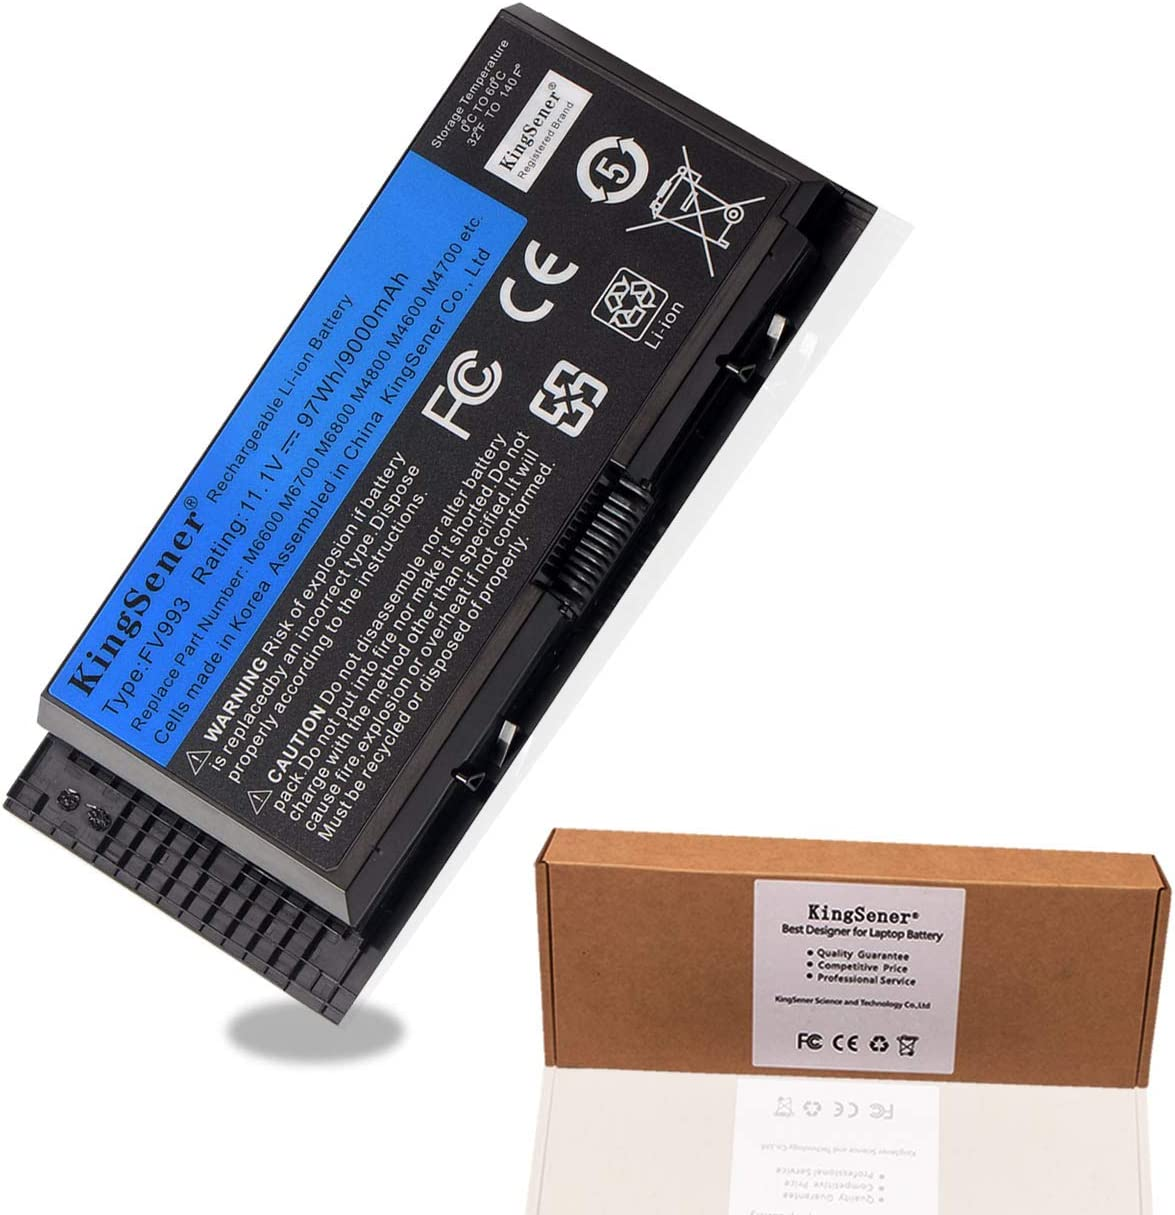 KingSener FV993 Battery for Dell Precision Laptop Computer M4600 M4700 M4800 M6600 M6700 M6800, Fit for PG6RC R7PND 0TN1K5 FV993 FJJ4W T3NT1 V7M28 KJ321